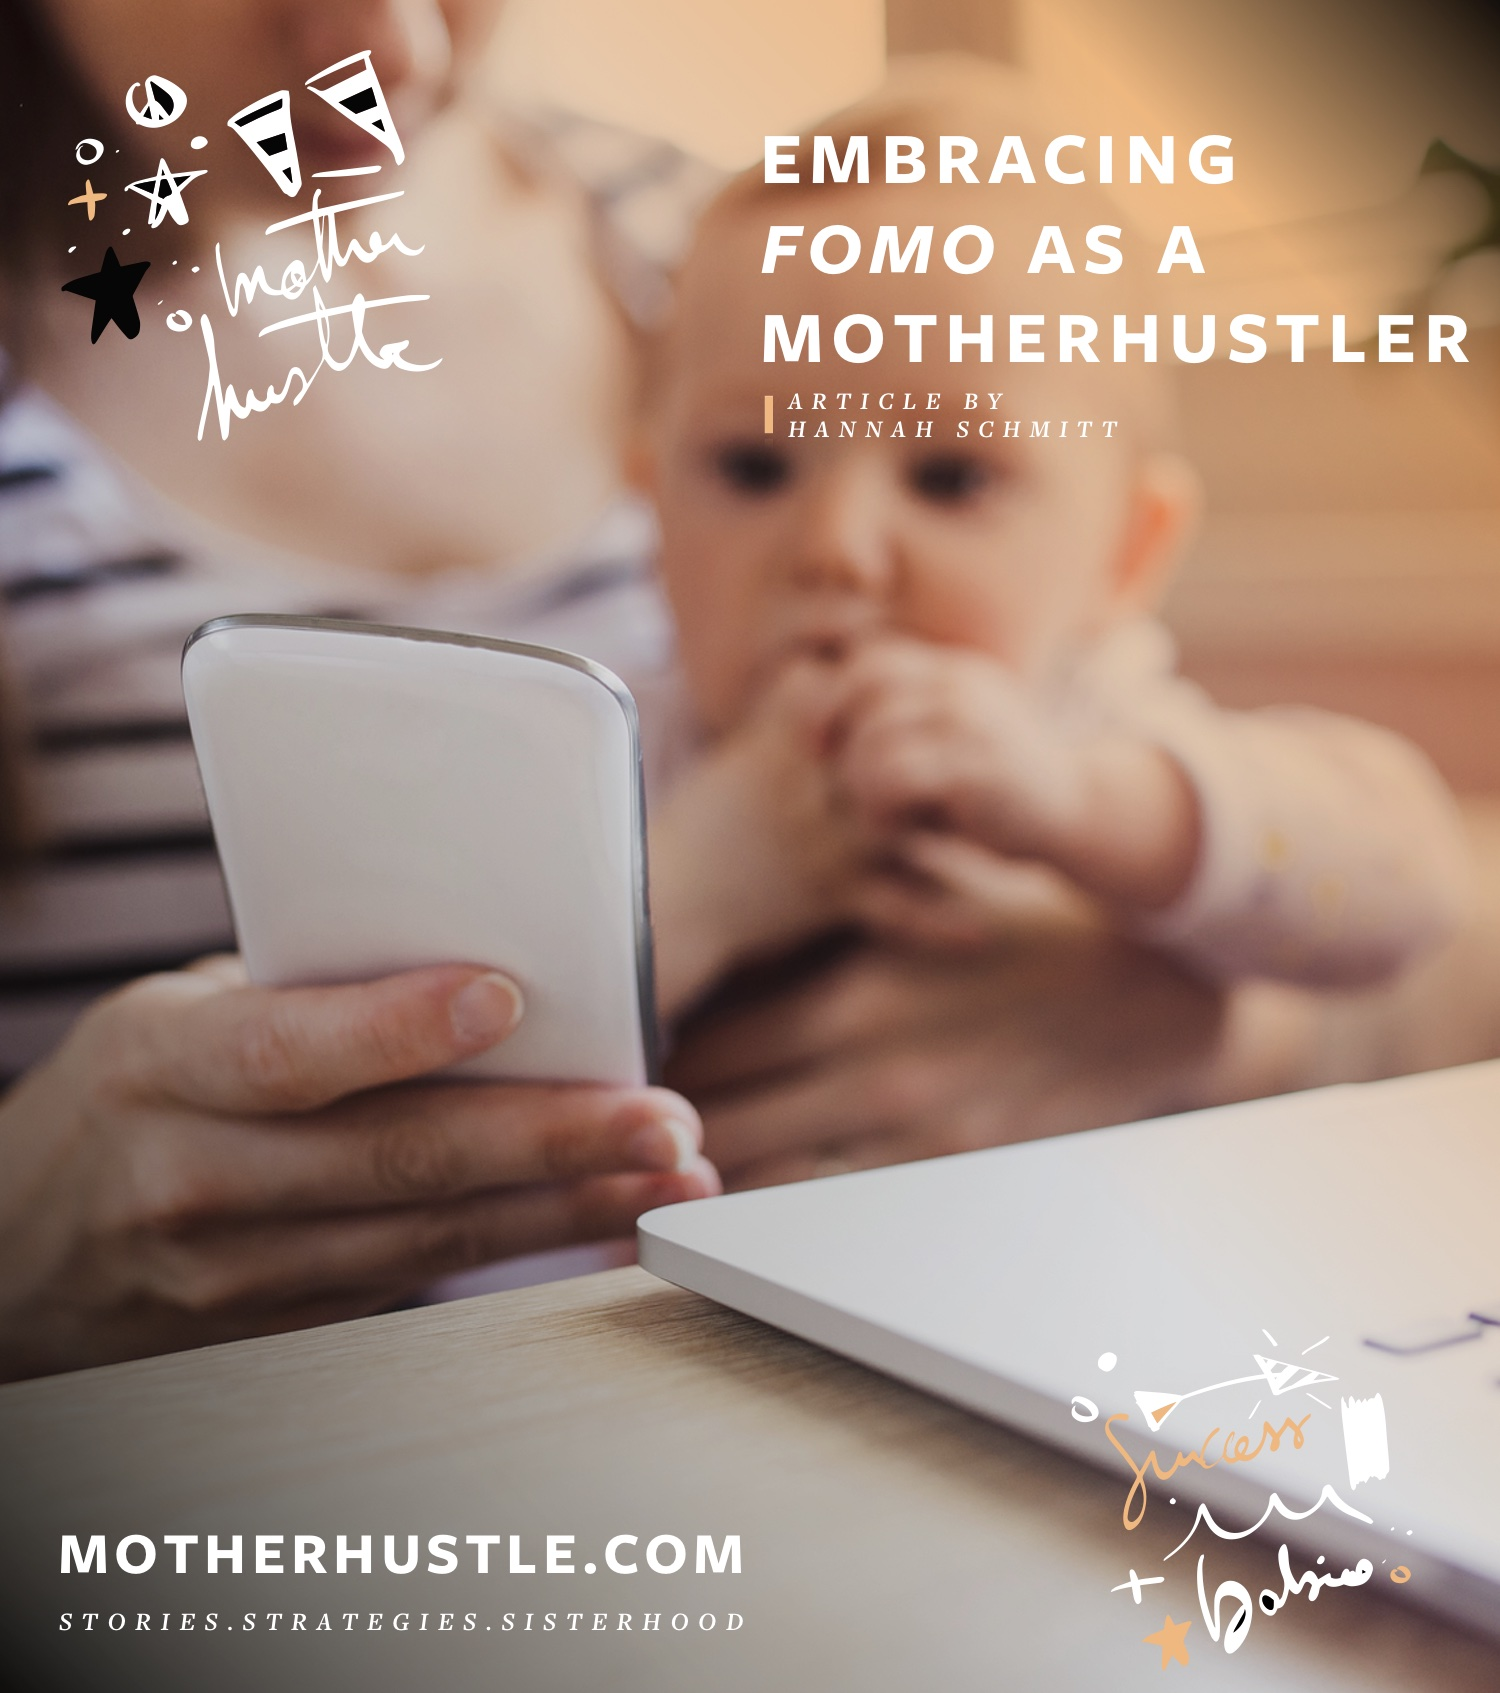 Embracing FOMO as a MotherHustler - by Hannah Schmitt for MotherHustle